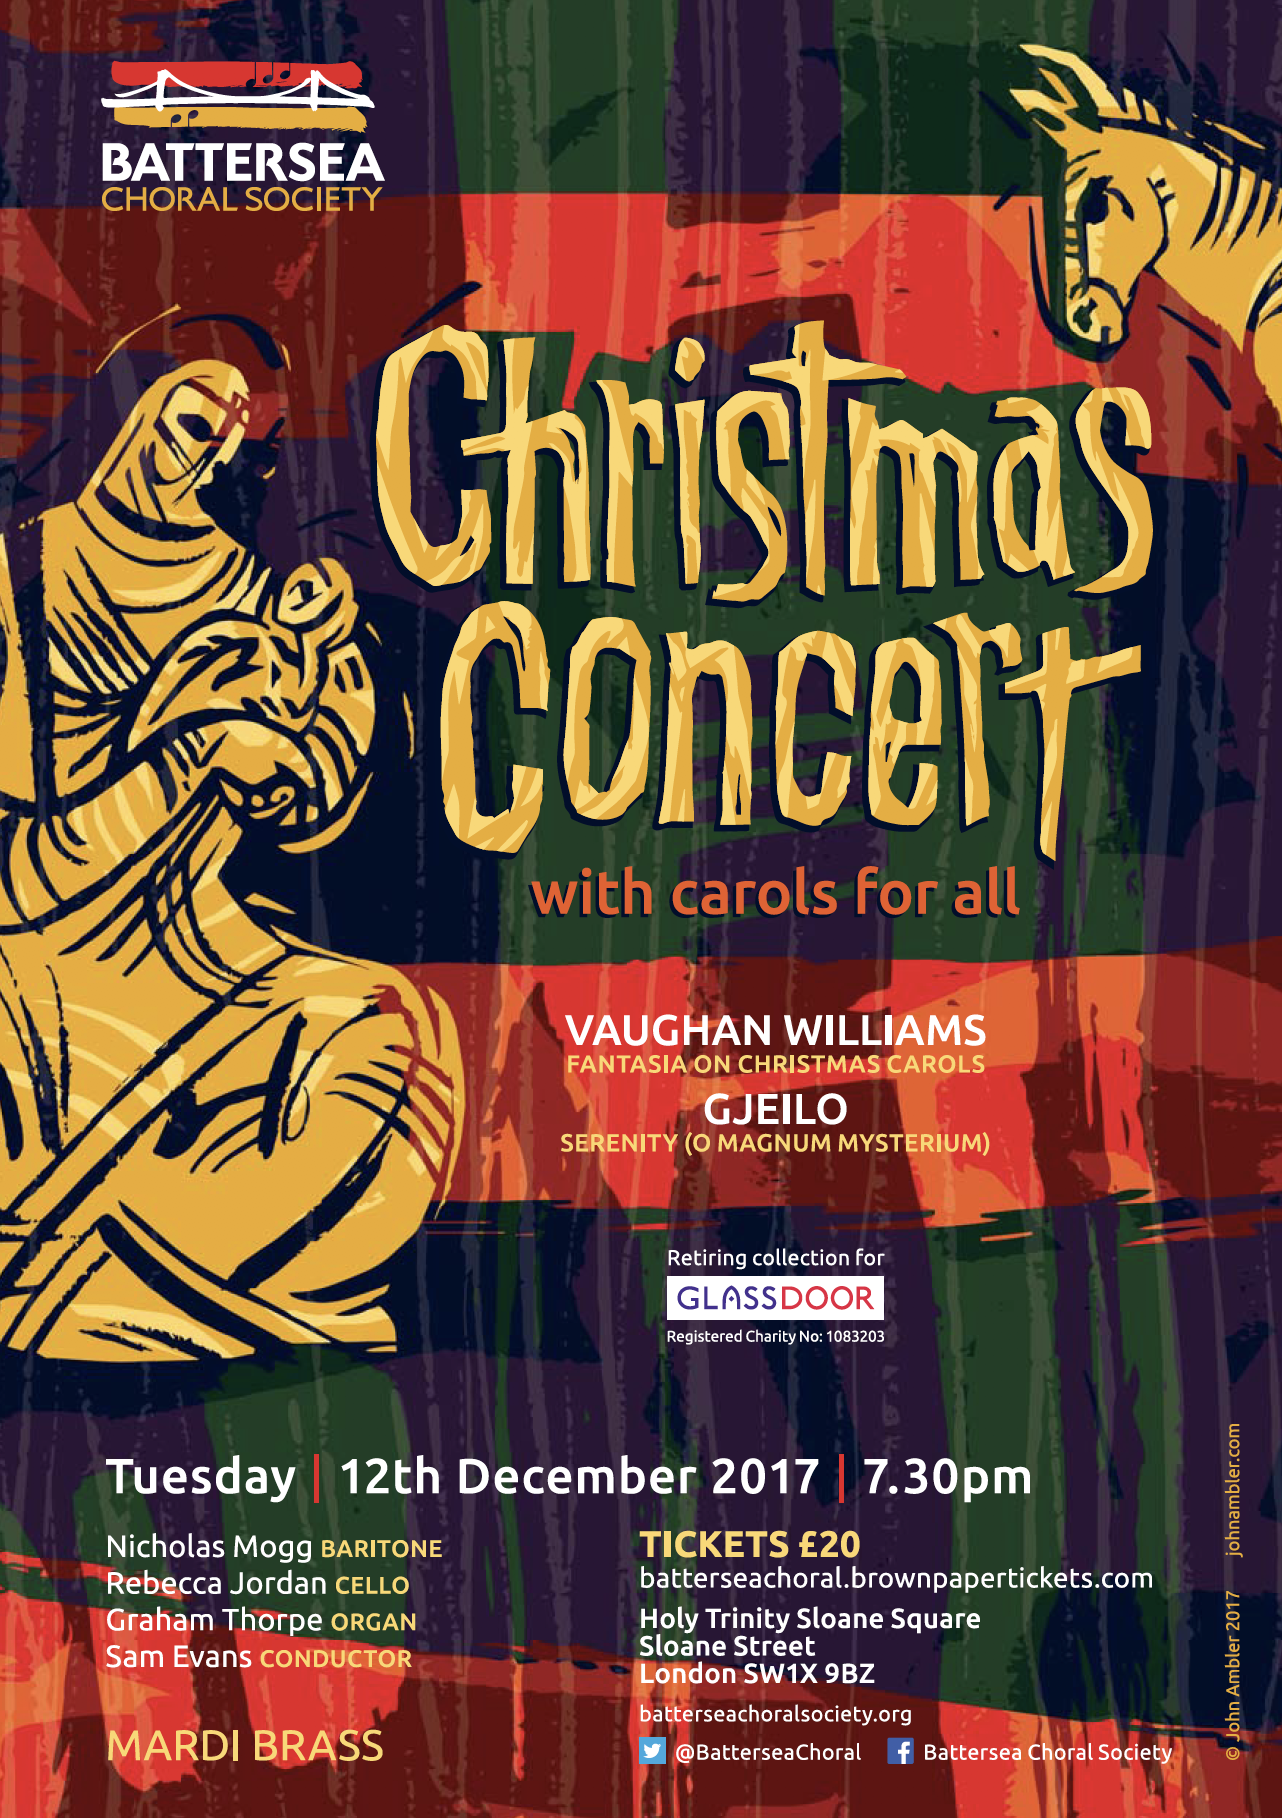 Battersea Choral Society Christmas Concert, Dec 2017